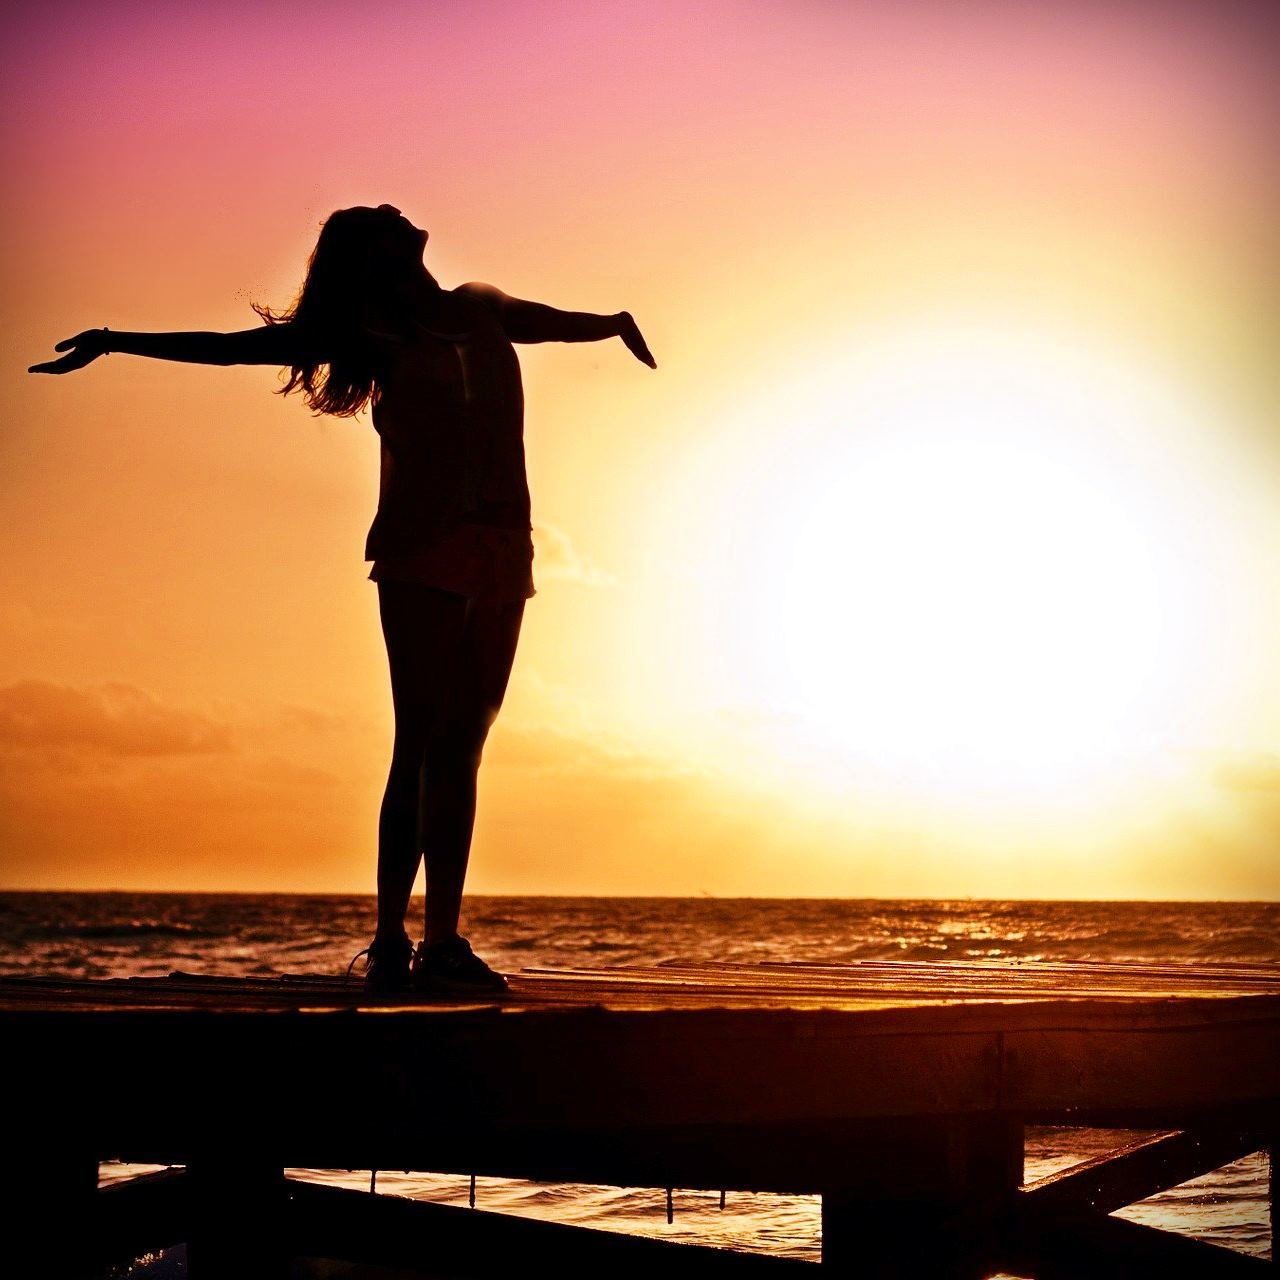 Woman silhouetted in the setting sun